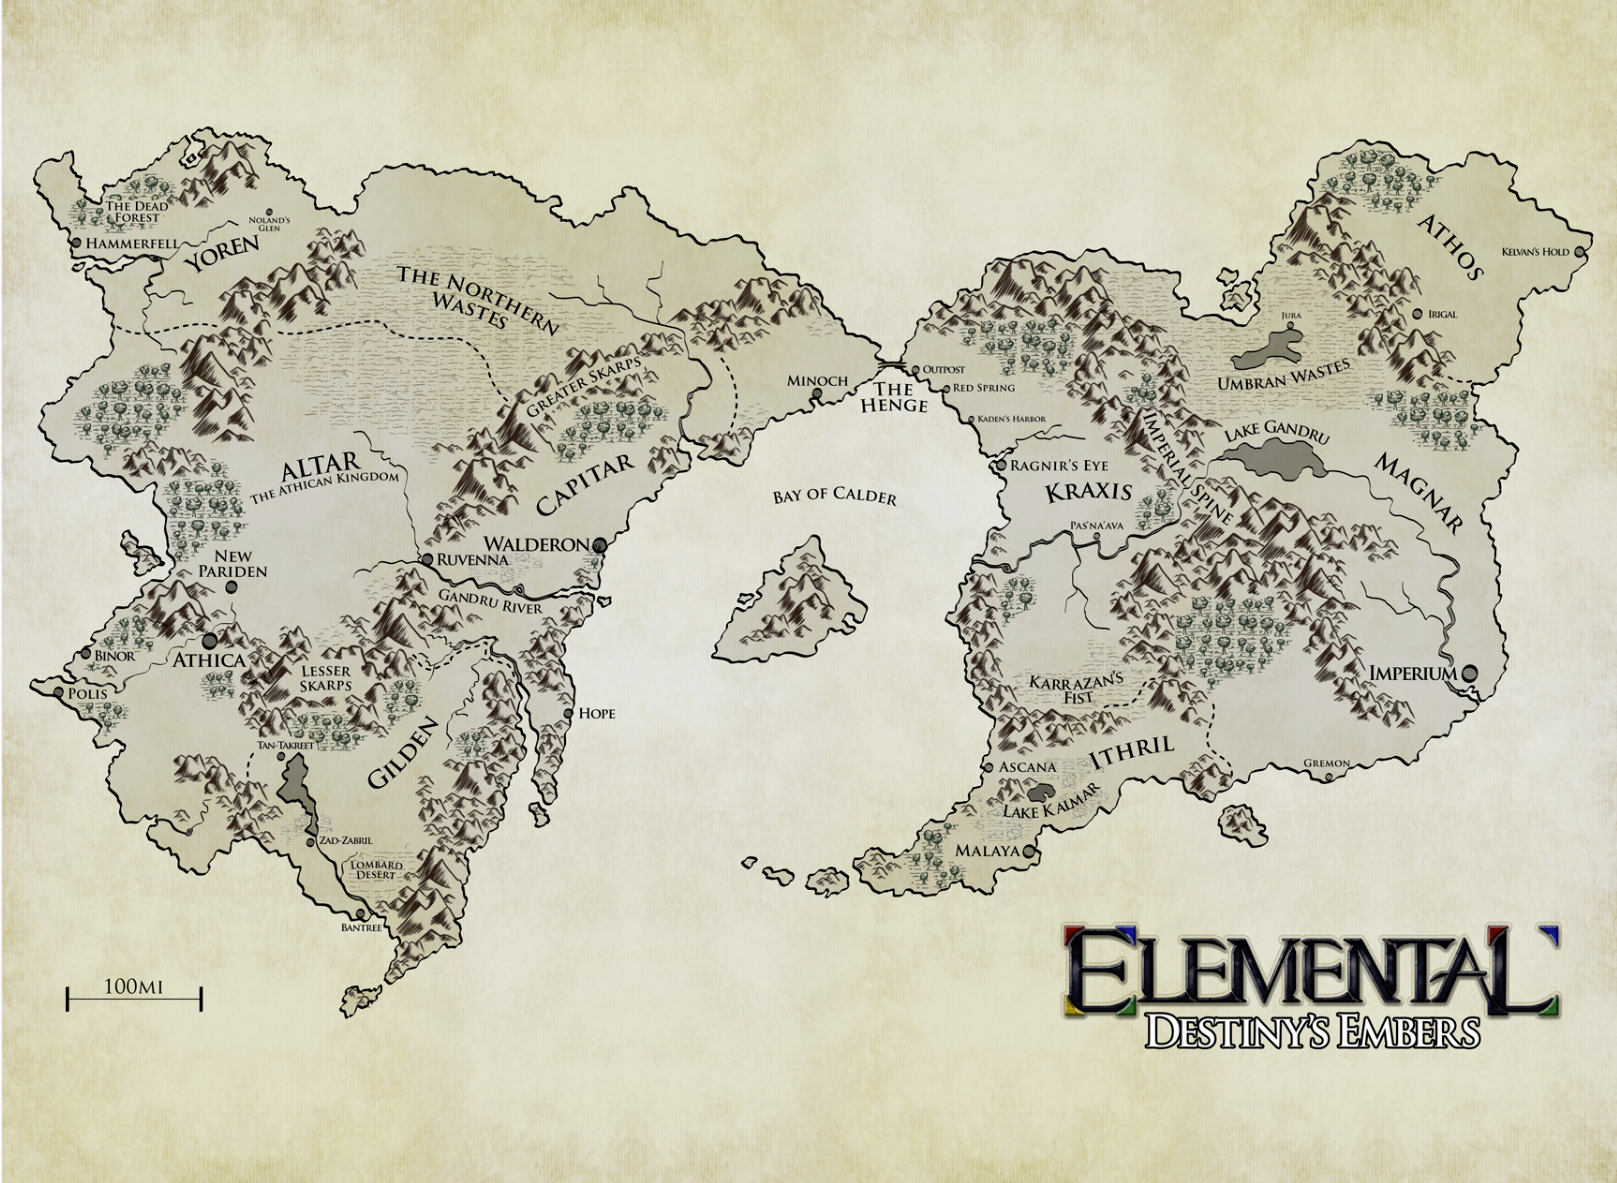 Map of Elemental Map Of Arda on map of numenor, map of forodwaith, map of rohan, map of undying lands tolkien, map of umbar, map of narnia, map of valinor, map of angmar, map of the undying lands, map of marsala, map of angband, map of aman, map of the shire, map of beleriand, map of eriador, map of elena, map of mordor, map of gondor, map of grande river, map of arnor,